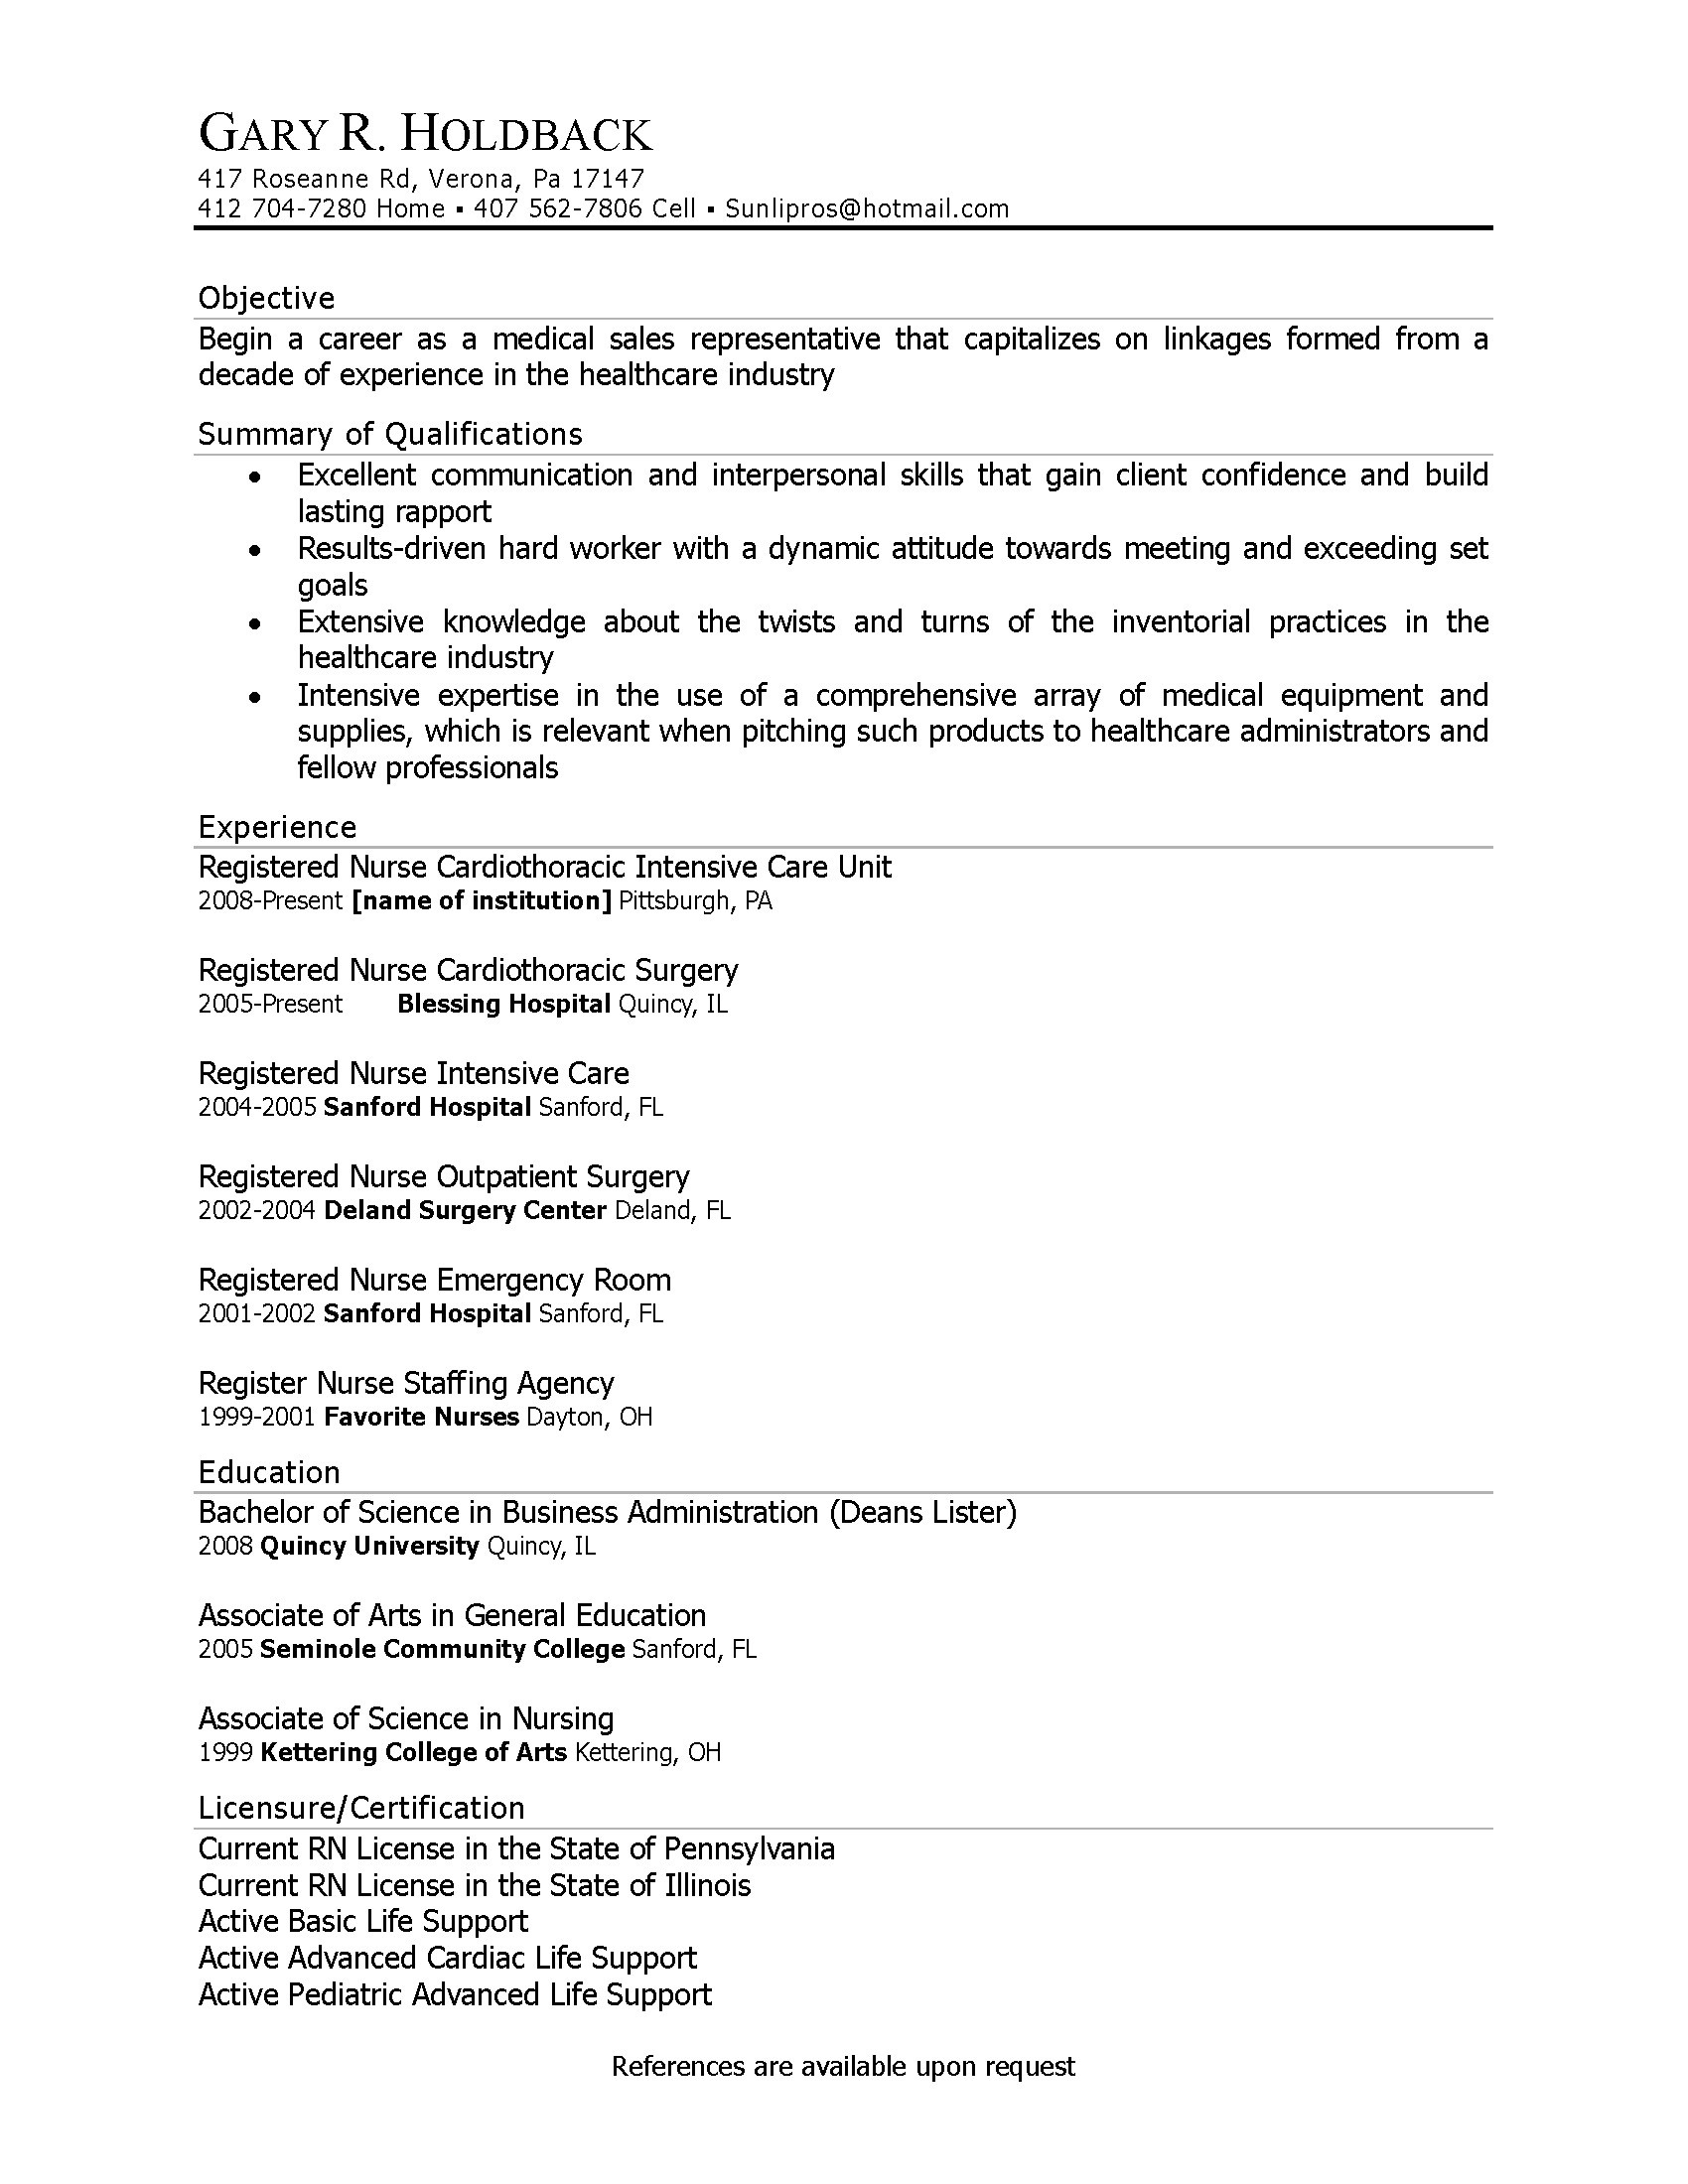 Resume Objective for Career Change - Objective Statements for Resume Beautiful Resumes Objective